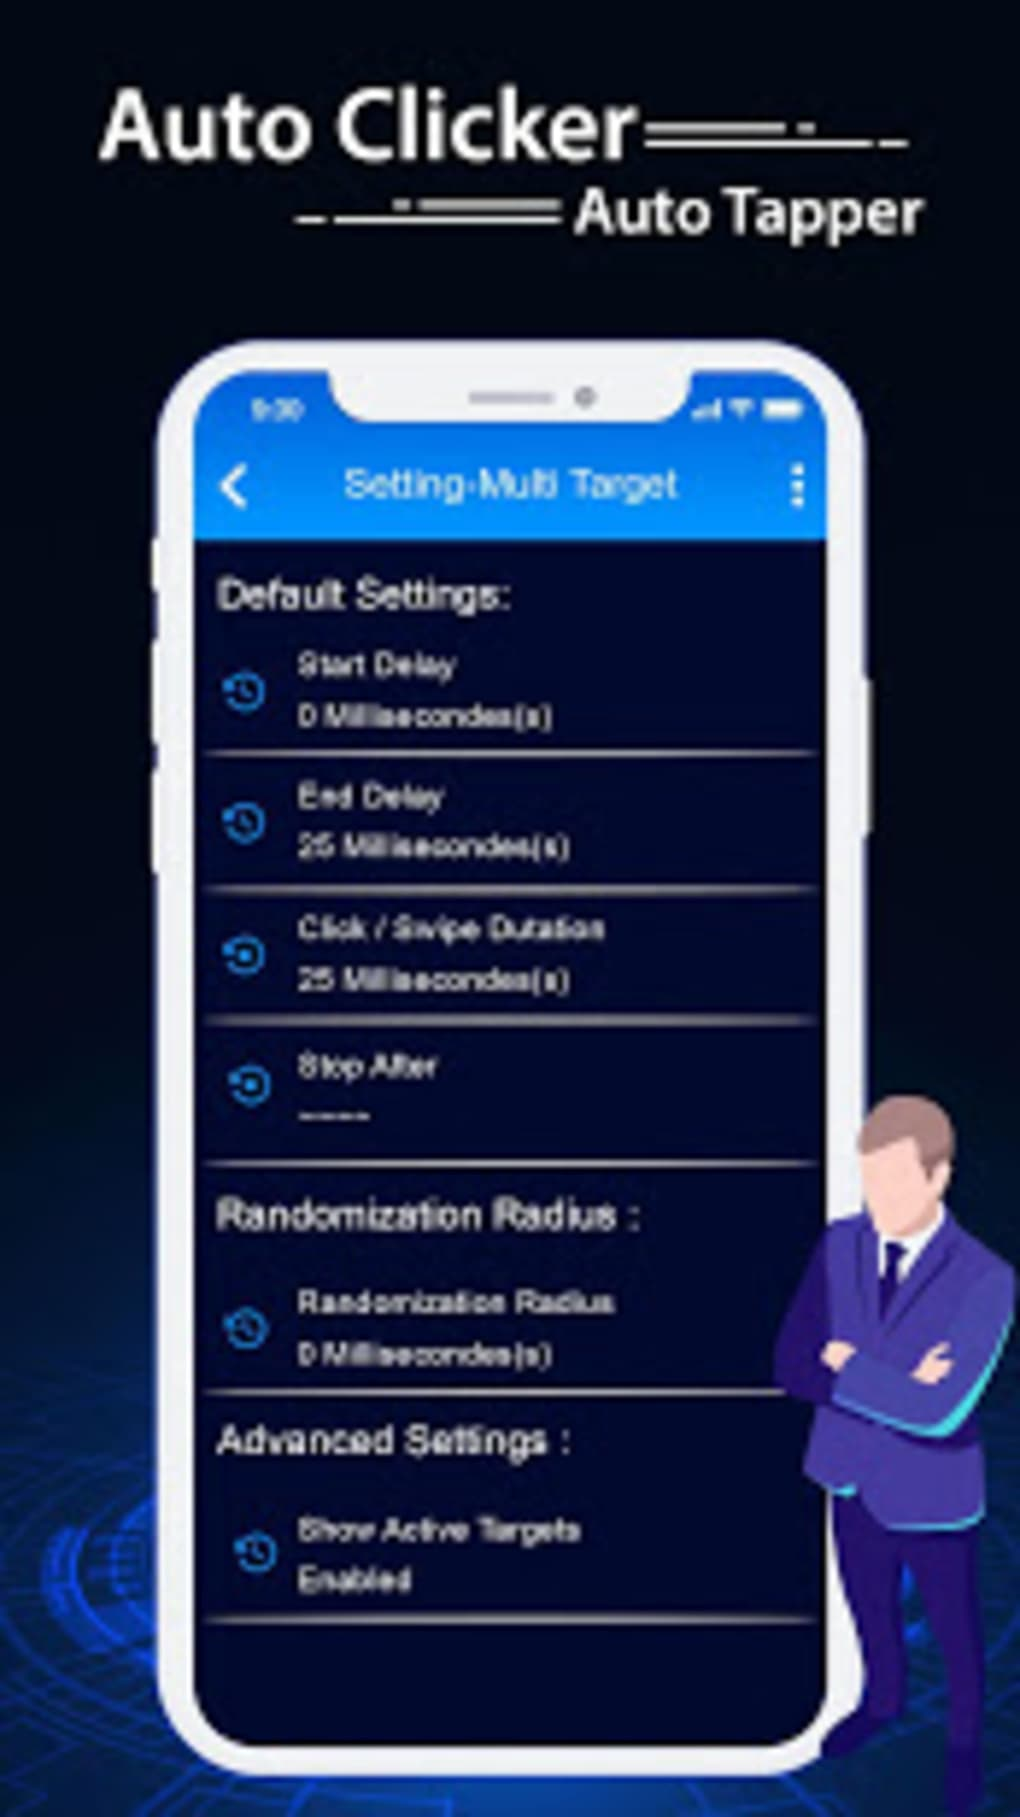 Auto Clicker - Automatic Tapper for Android - Download